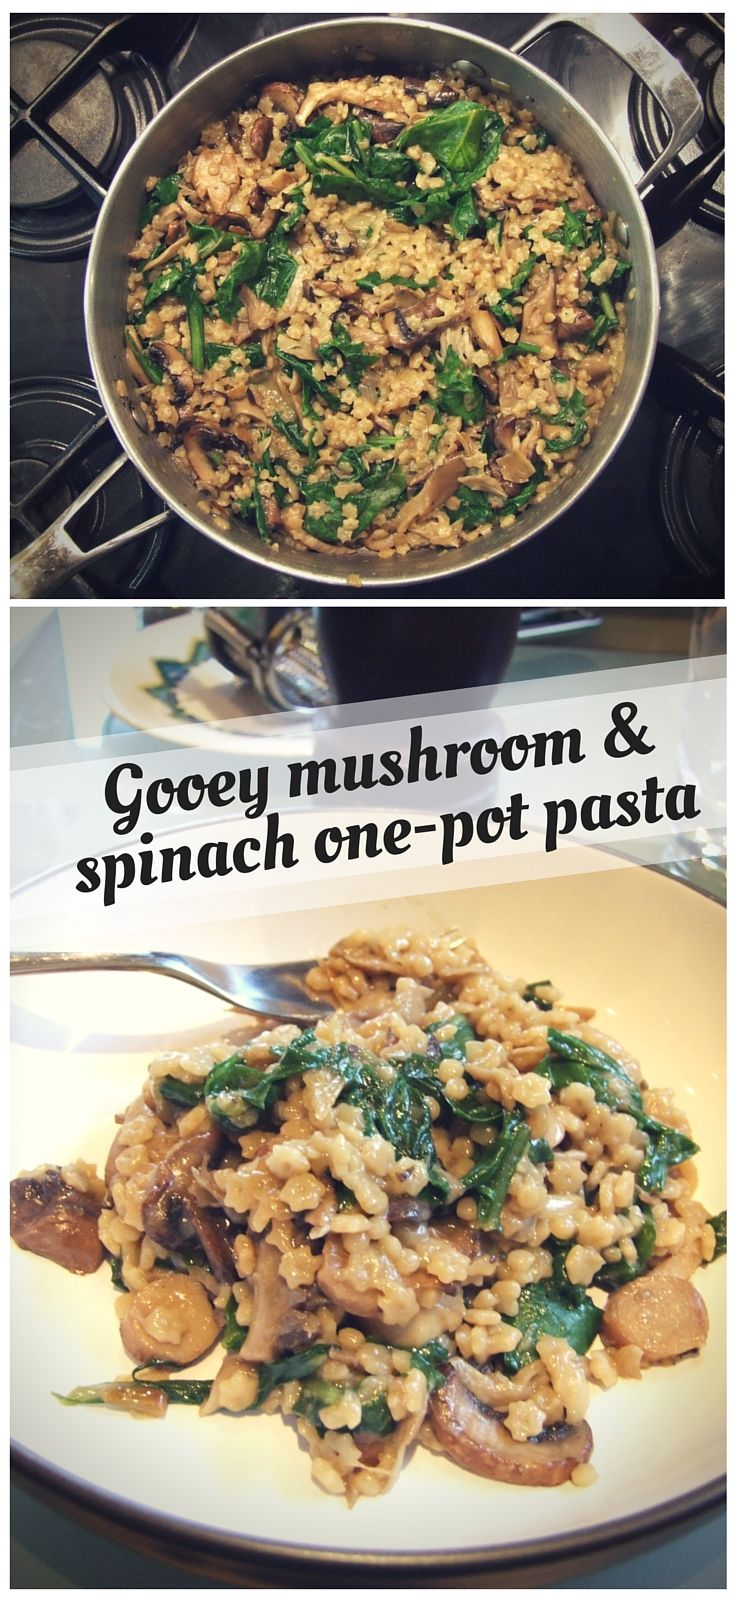 gooey wild mushroom & spinach one-pot pasta